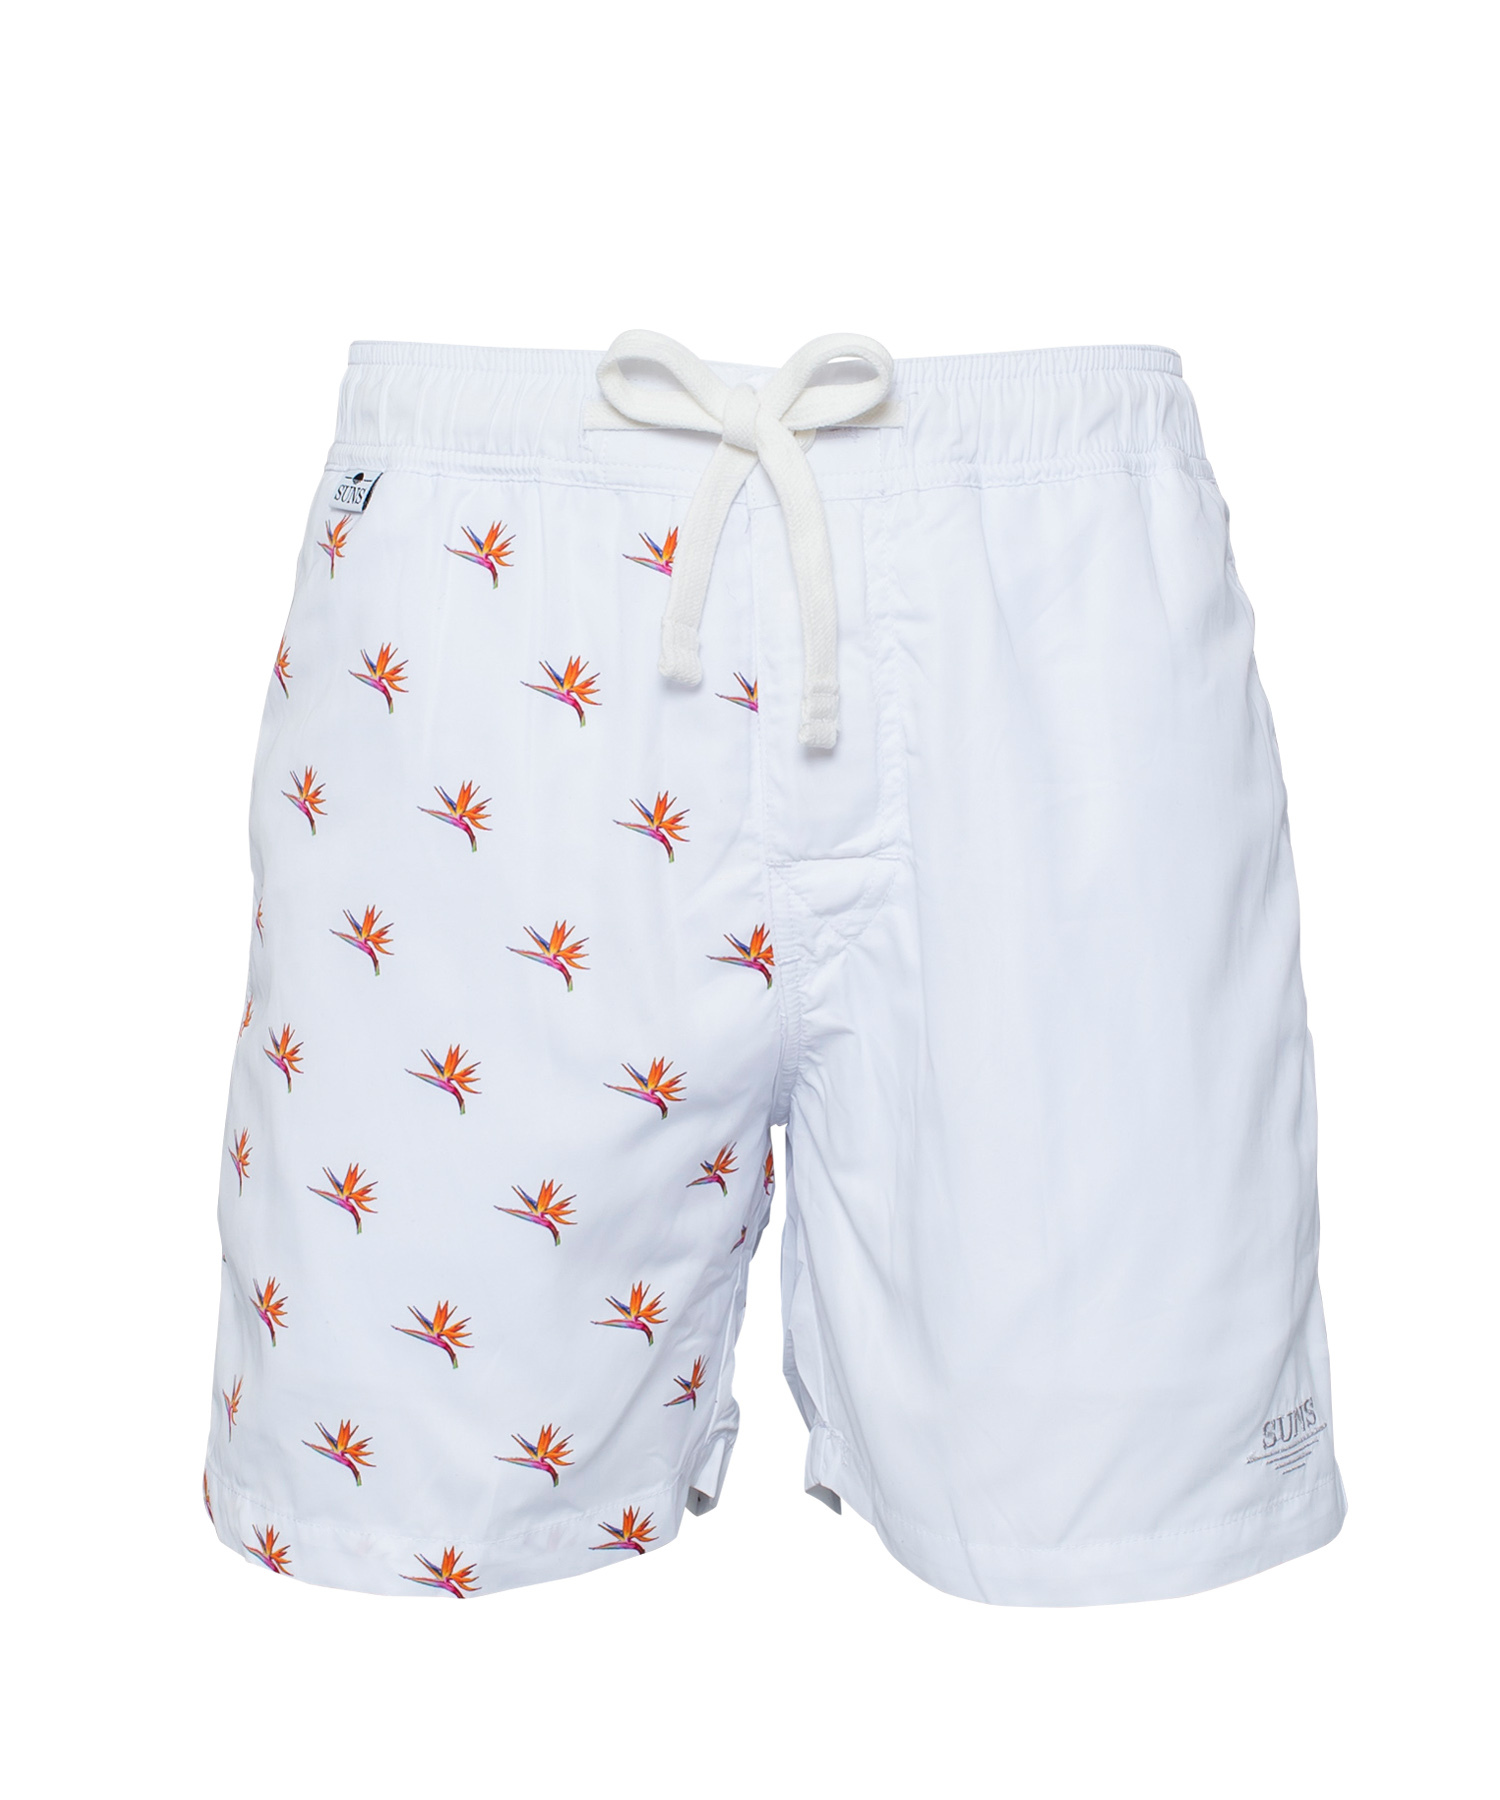 SUNS BIRD OF PARADISE PRINT SWIM SHORTS[RSW003]